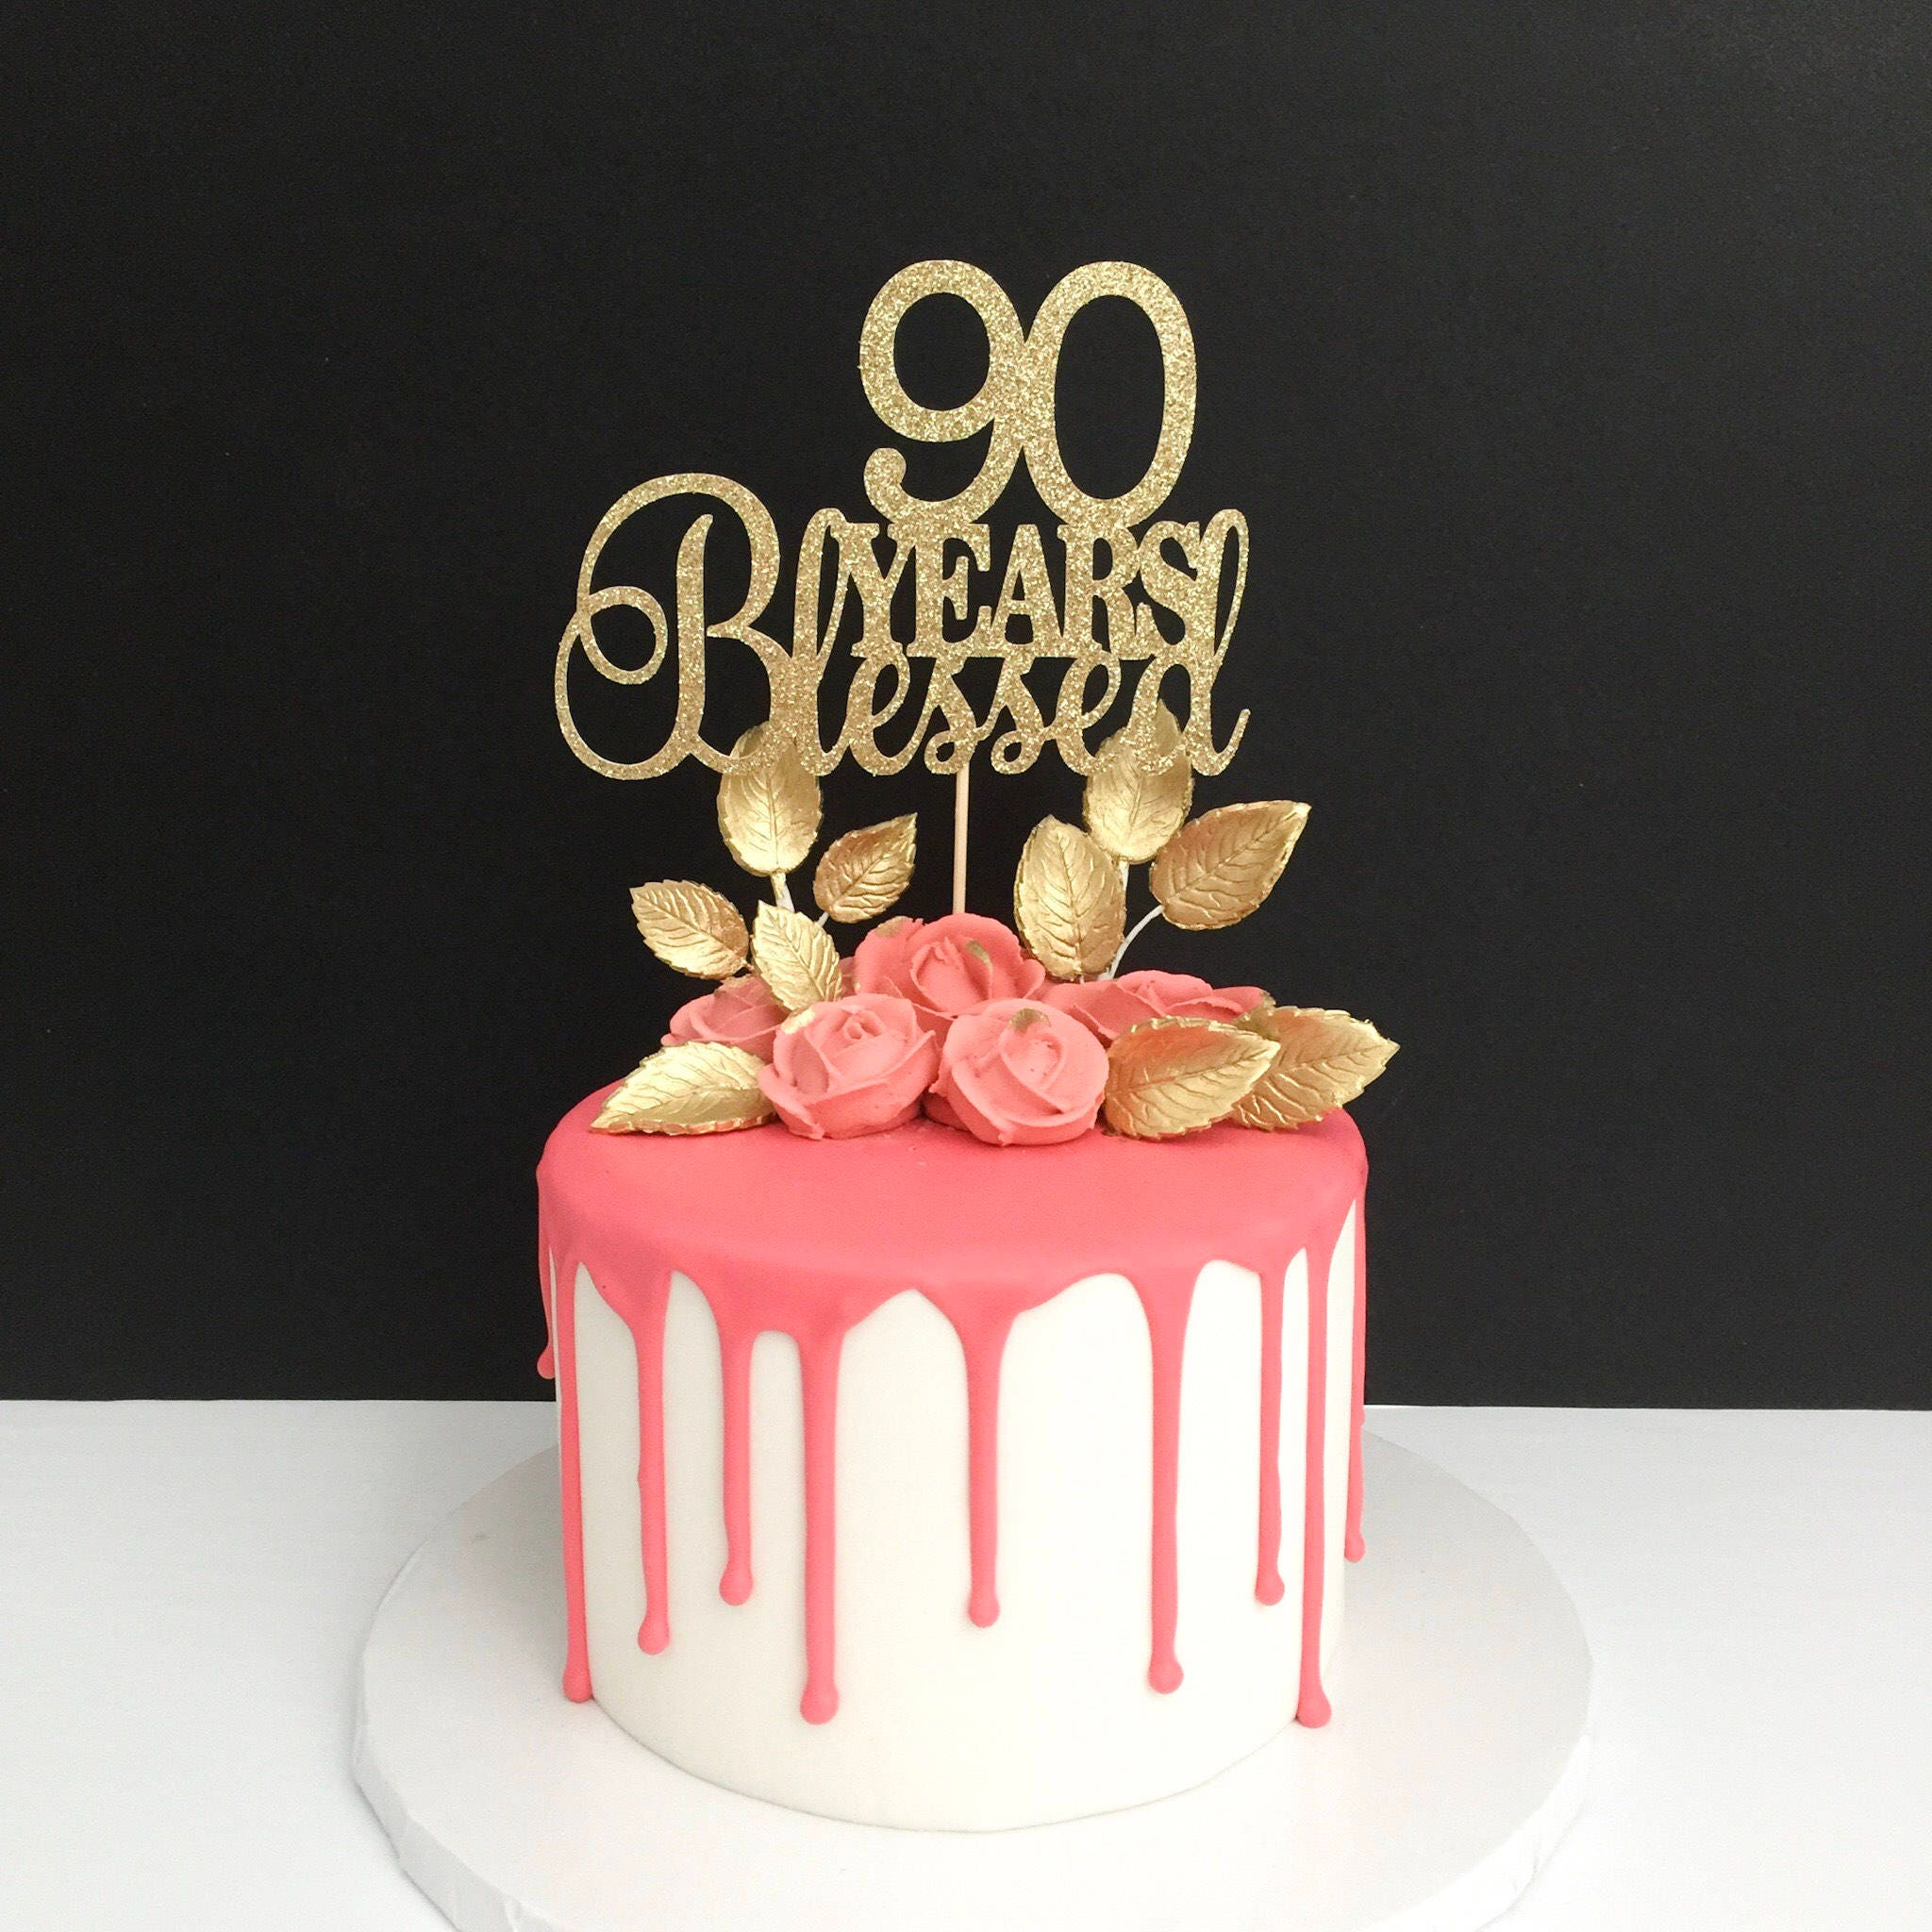 90 Years Blessed Cake Topper 90th Birthday Cake Topper ...